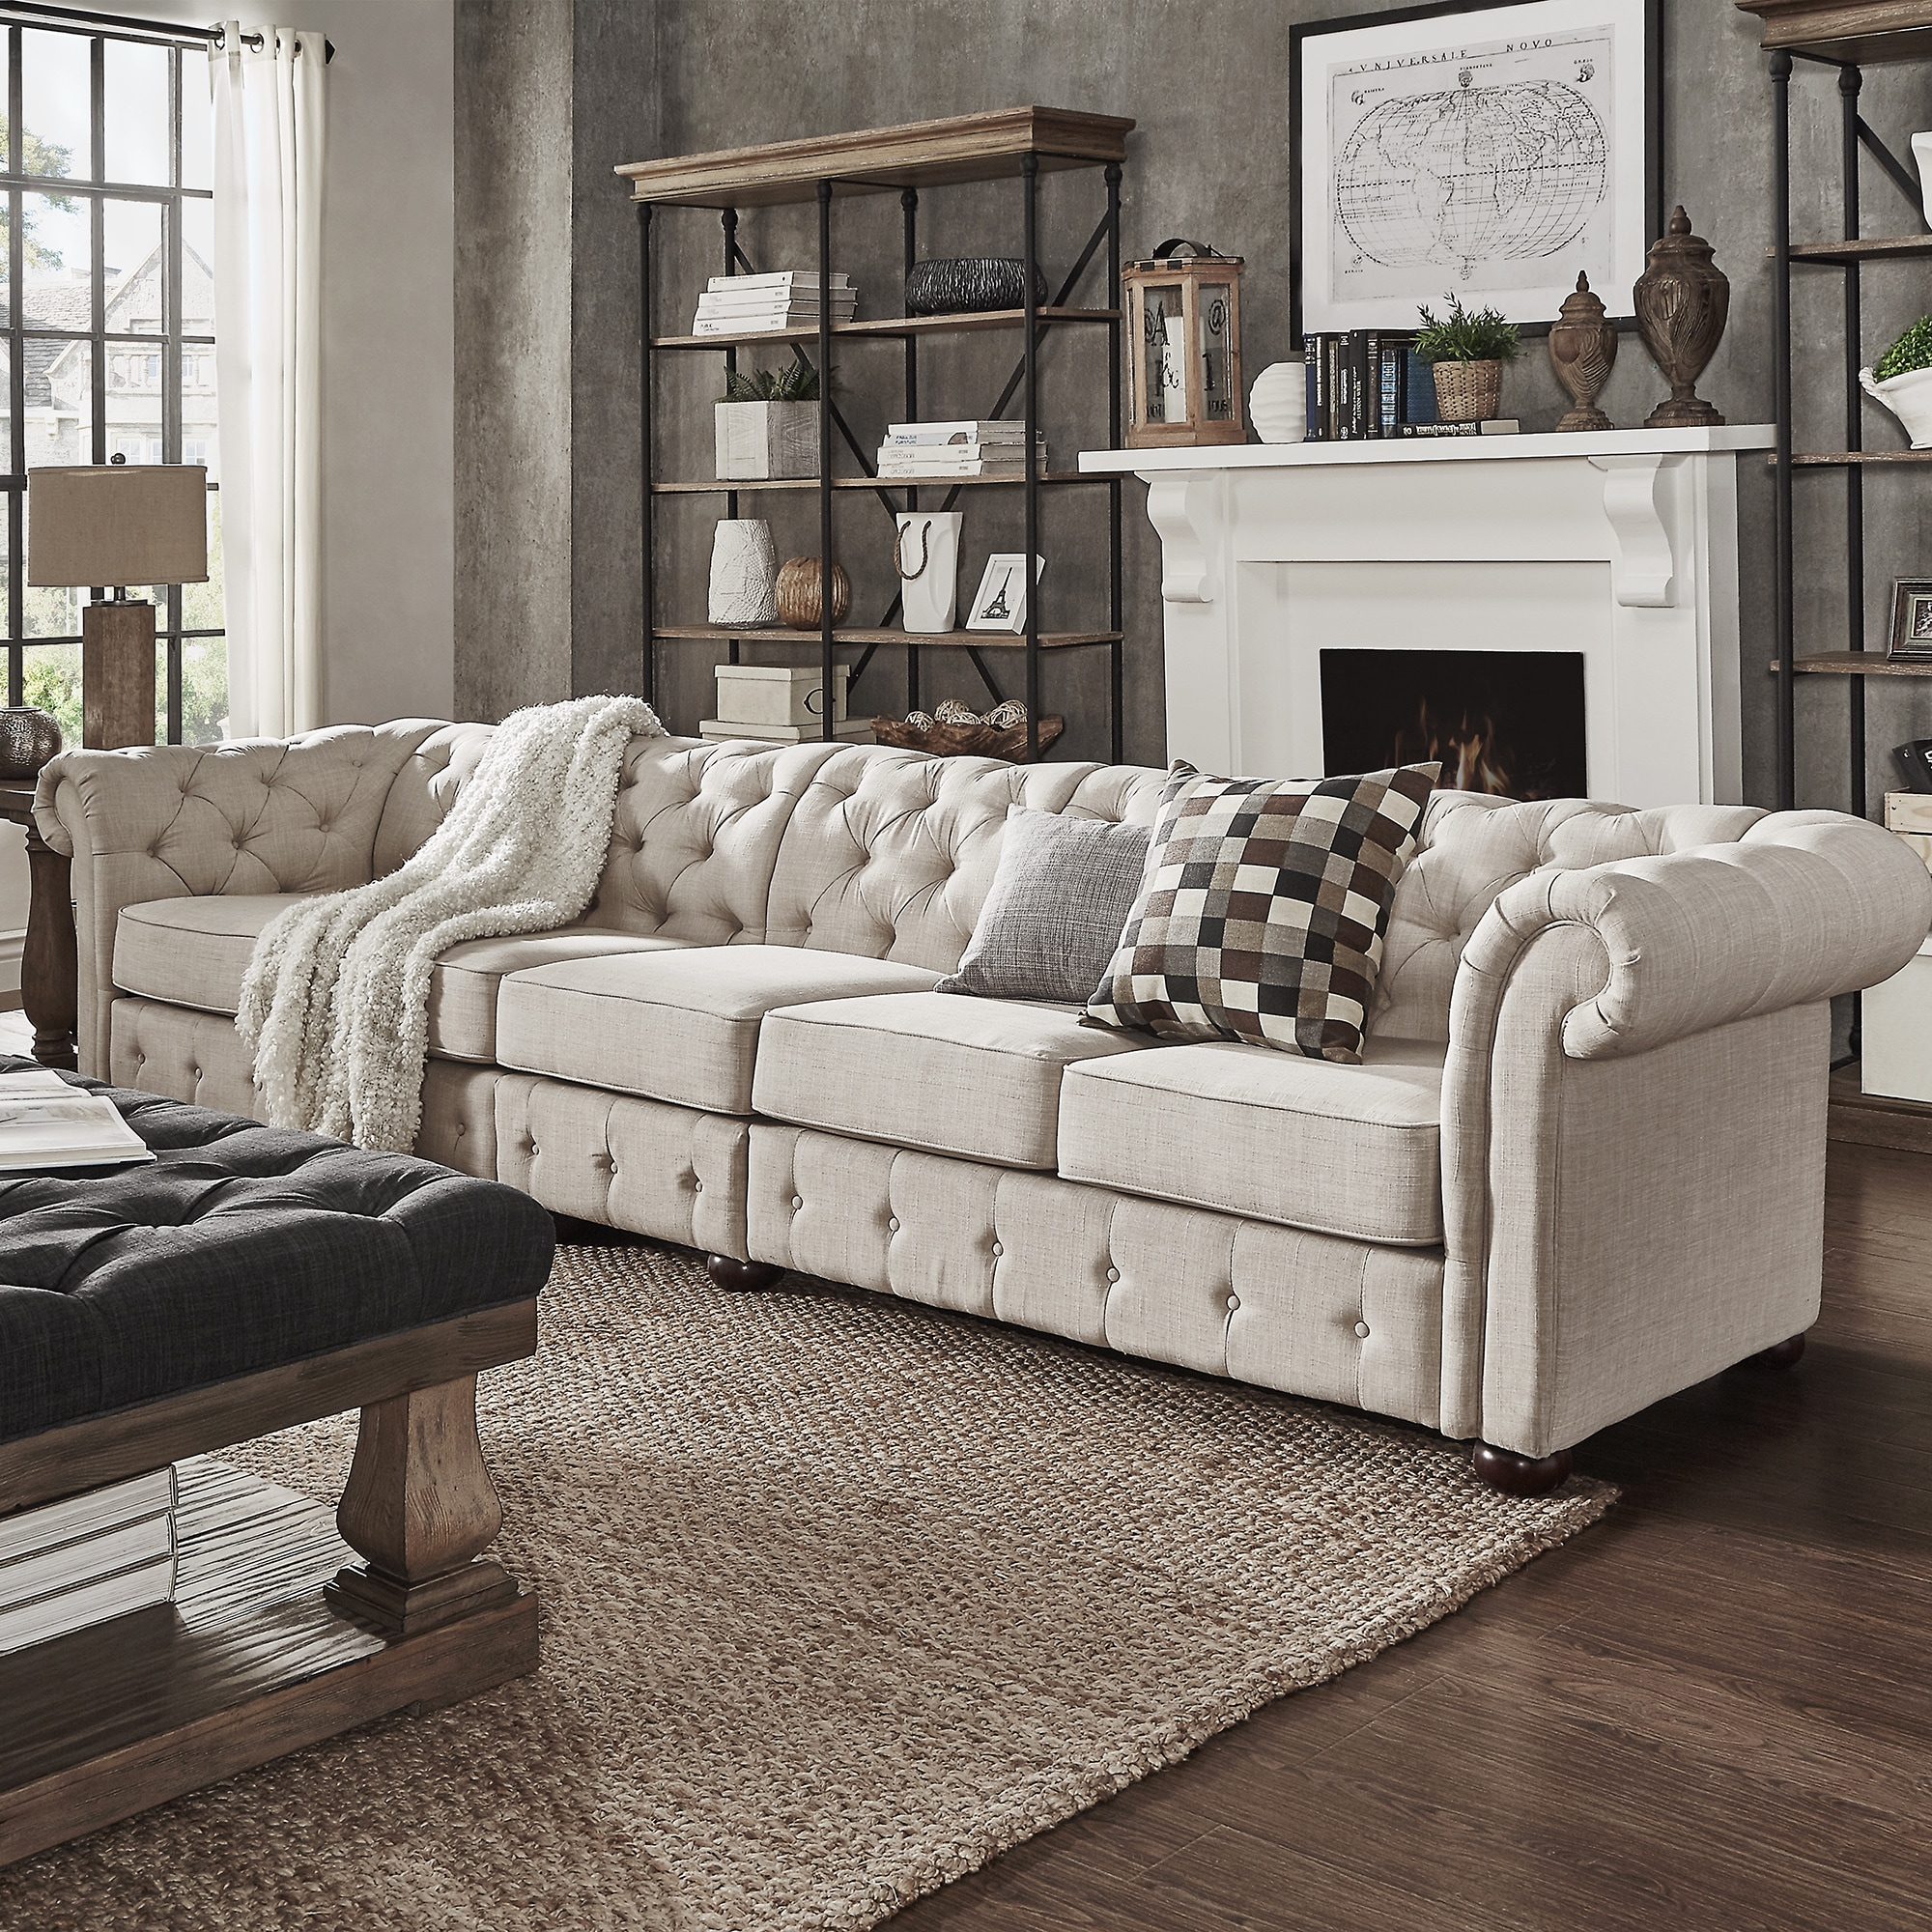 Cheap Modular Lounges Knightsbridge Beige Linen Oversize Extra Long Tufted Chesterfield Modular Sofa By Inspire Q Artisan